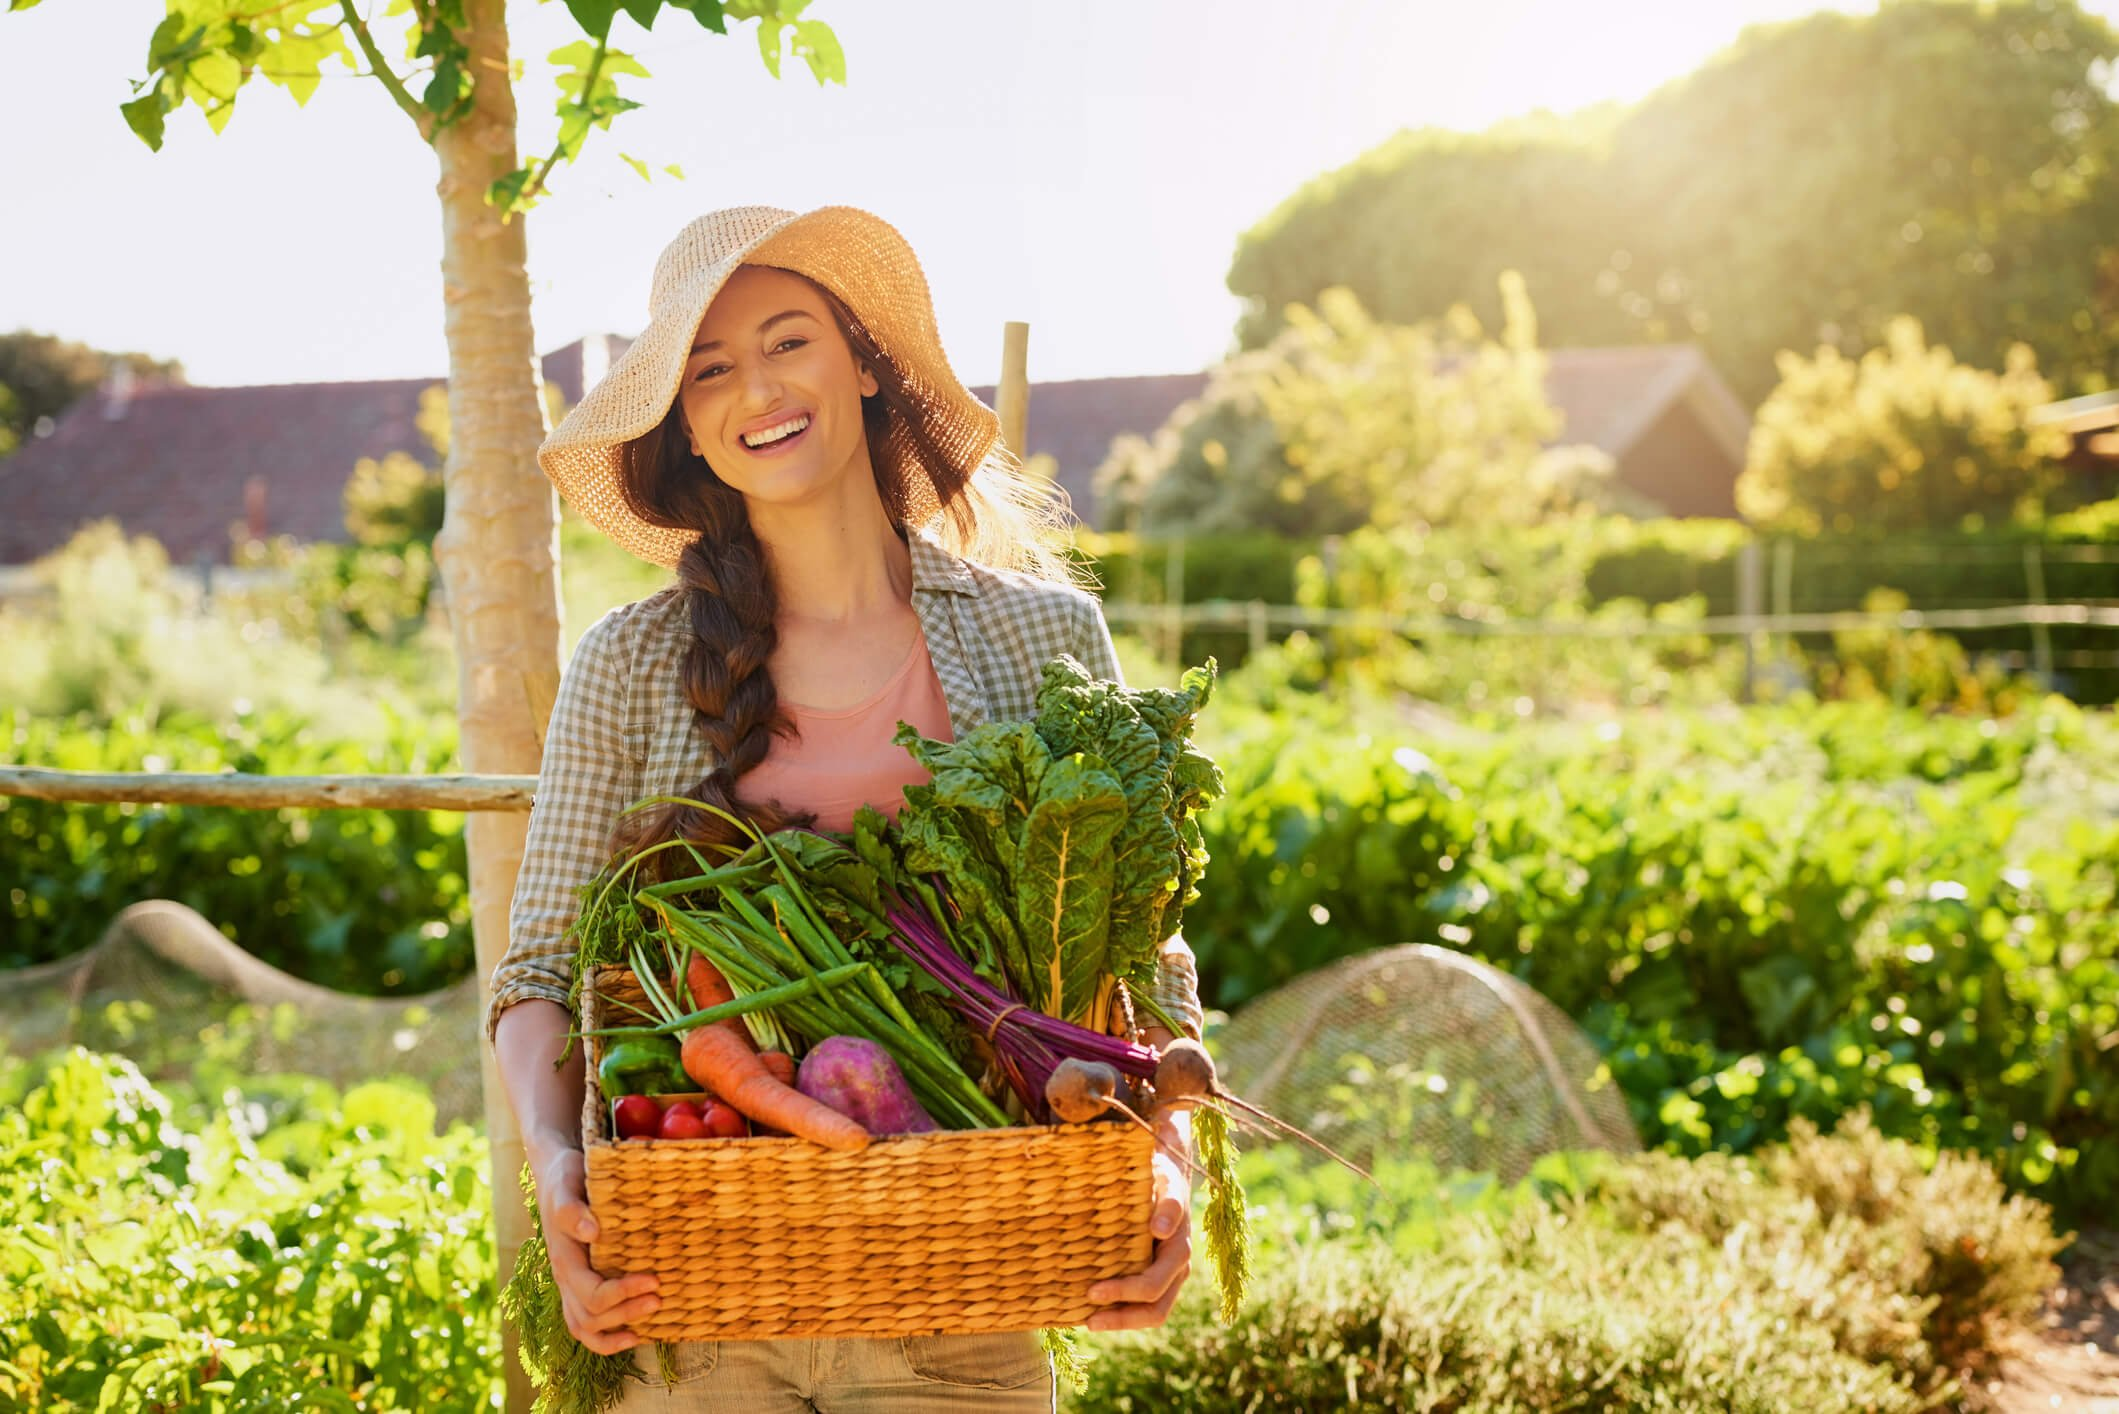 Woman carrying basket of spring produce